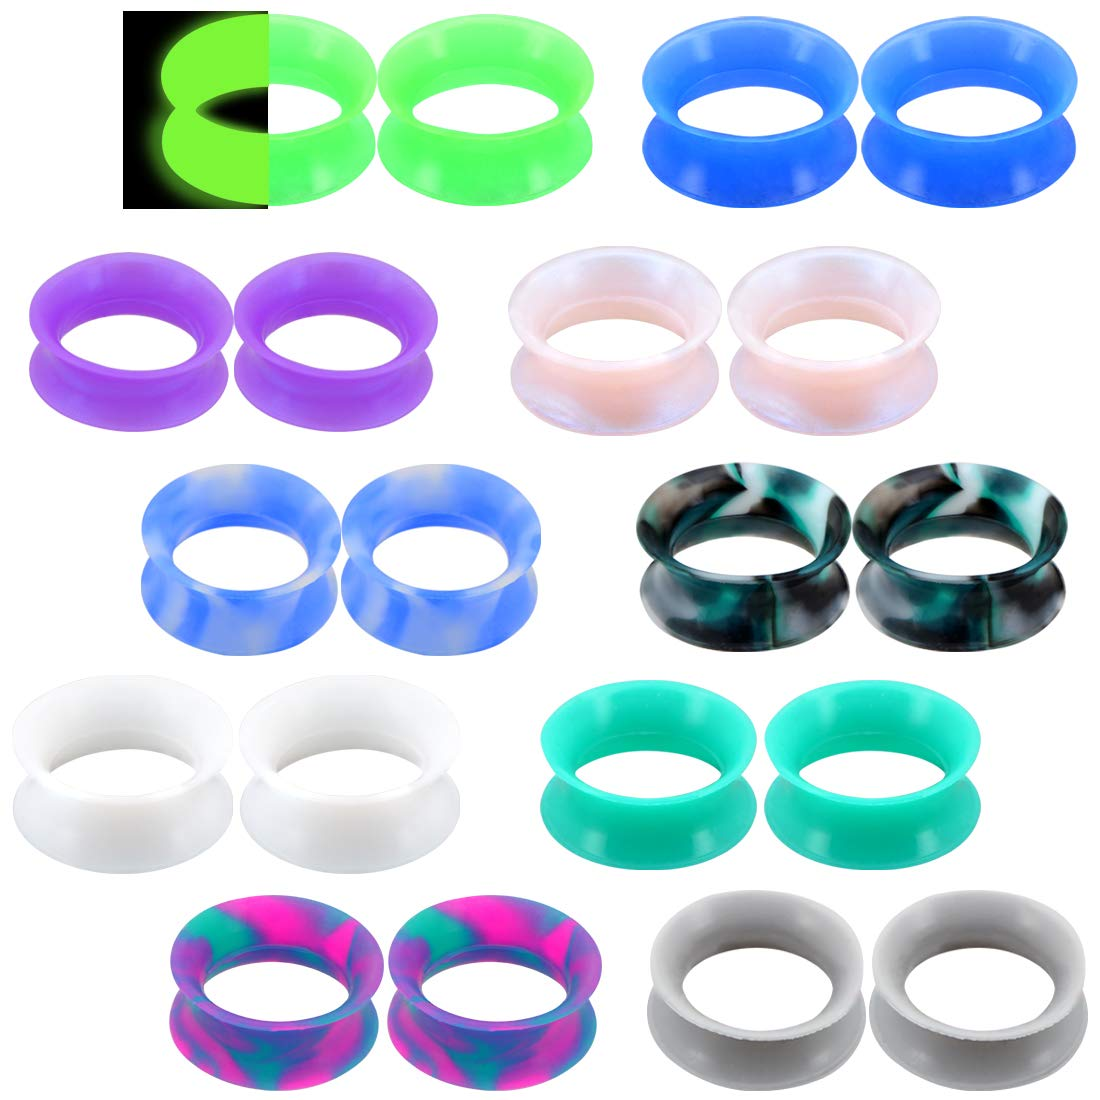 Jewseen 20PCS Soft Silicone Ear Gauges Flesh Tunnels Plugs Stretchers Expander Double Flared Flesh Tunnels Ear Piercing Jewelry by Jewseen